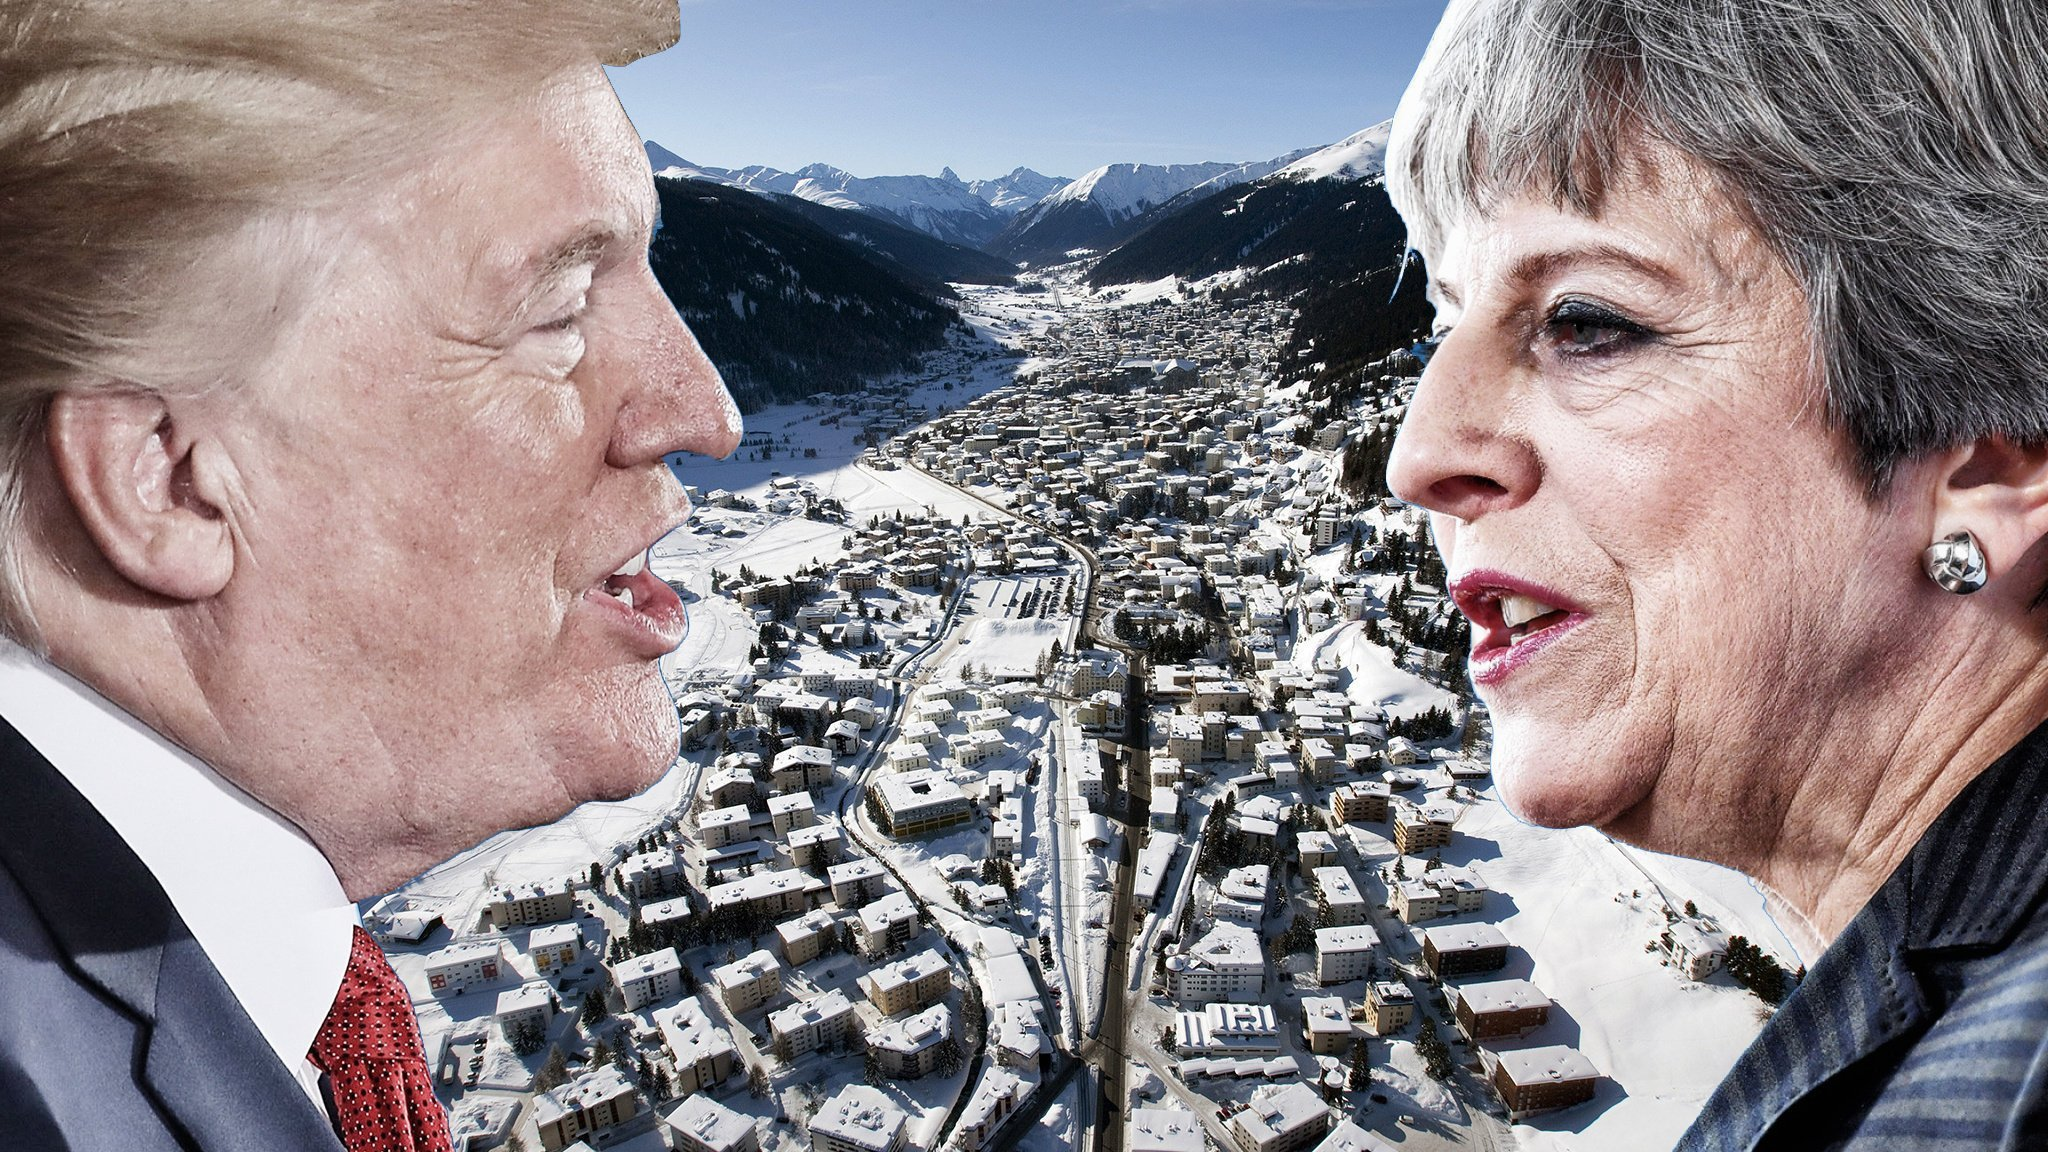 Donald Trump, Davos and the special relationship